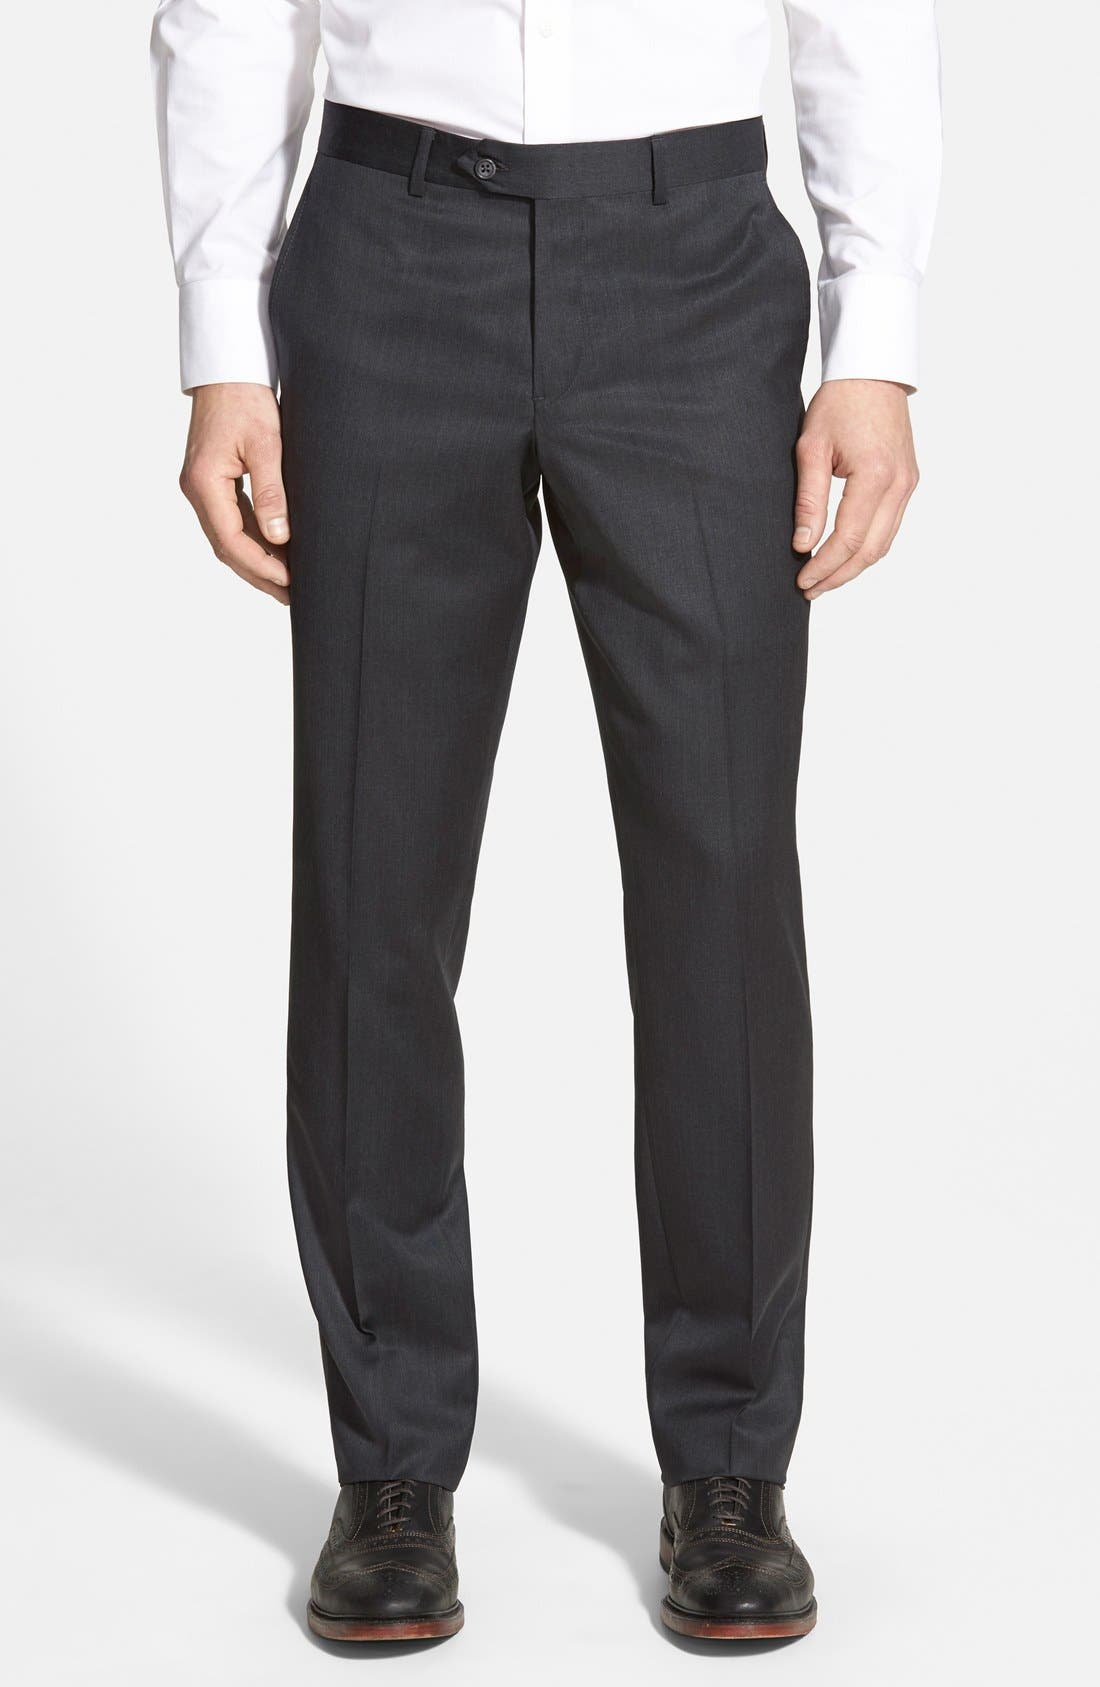 When you're not busy conquering the conference room, kick back in the Kick It Grey Trouser Pants! Sleek pants with a high waist, and tapered ankle-length hems.